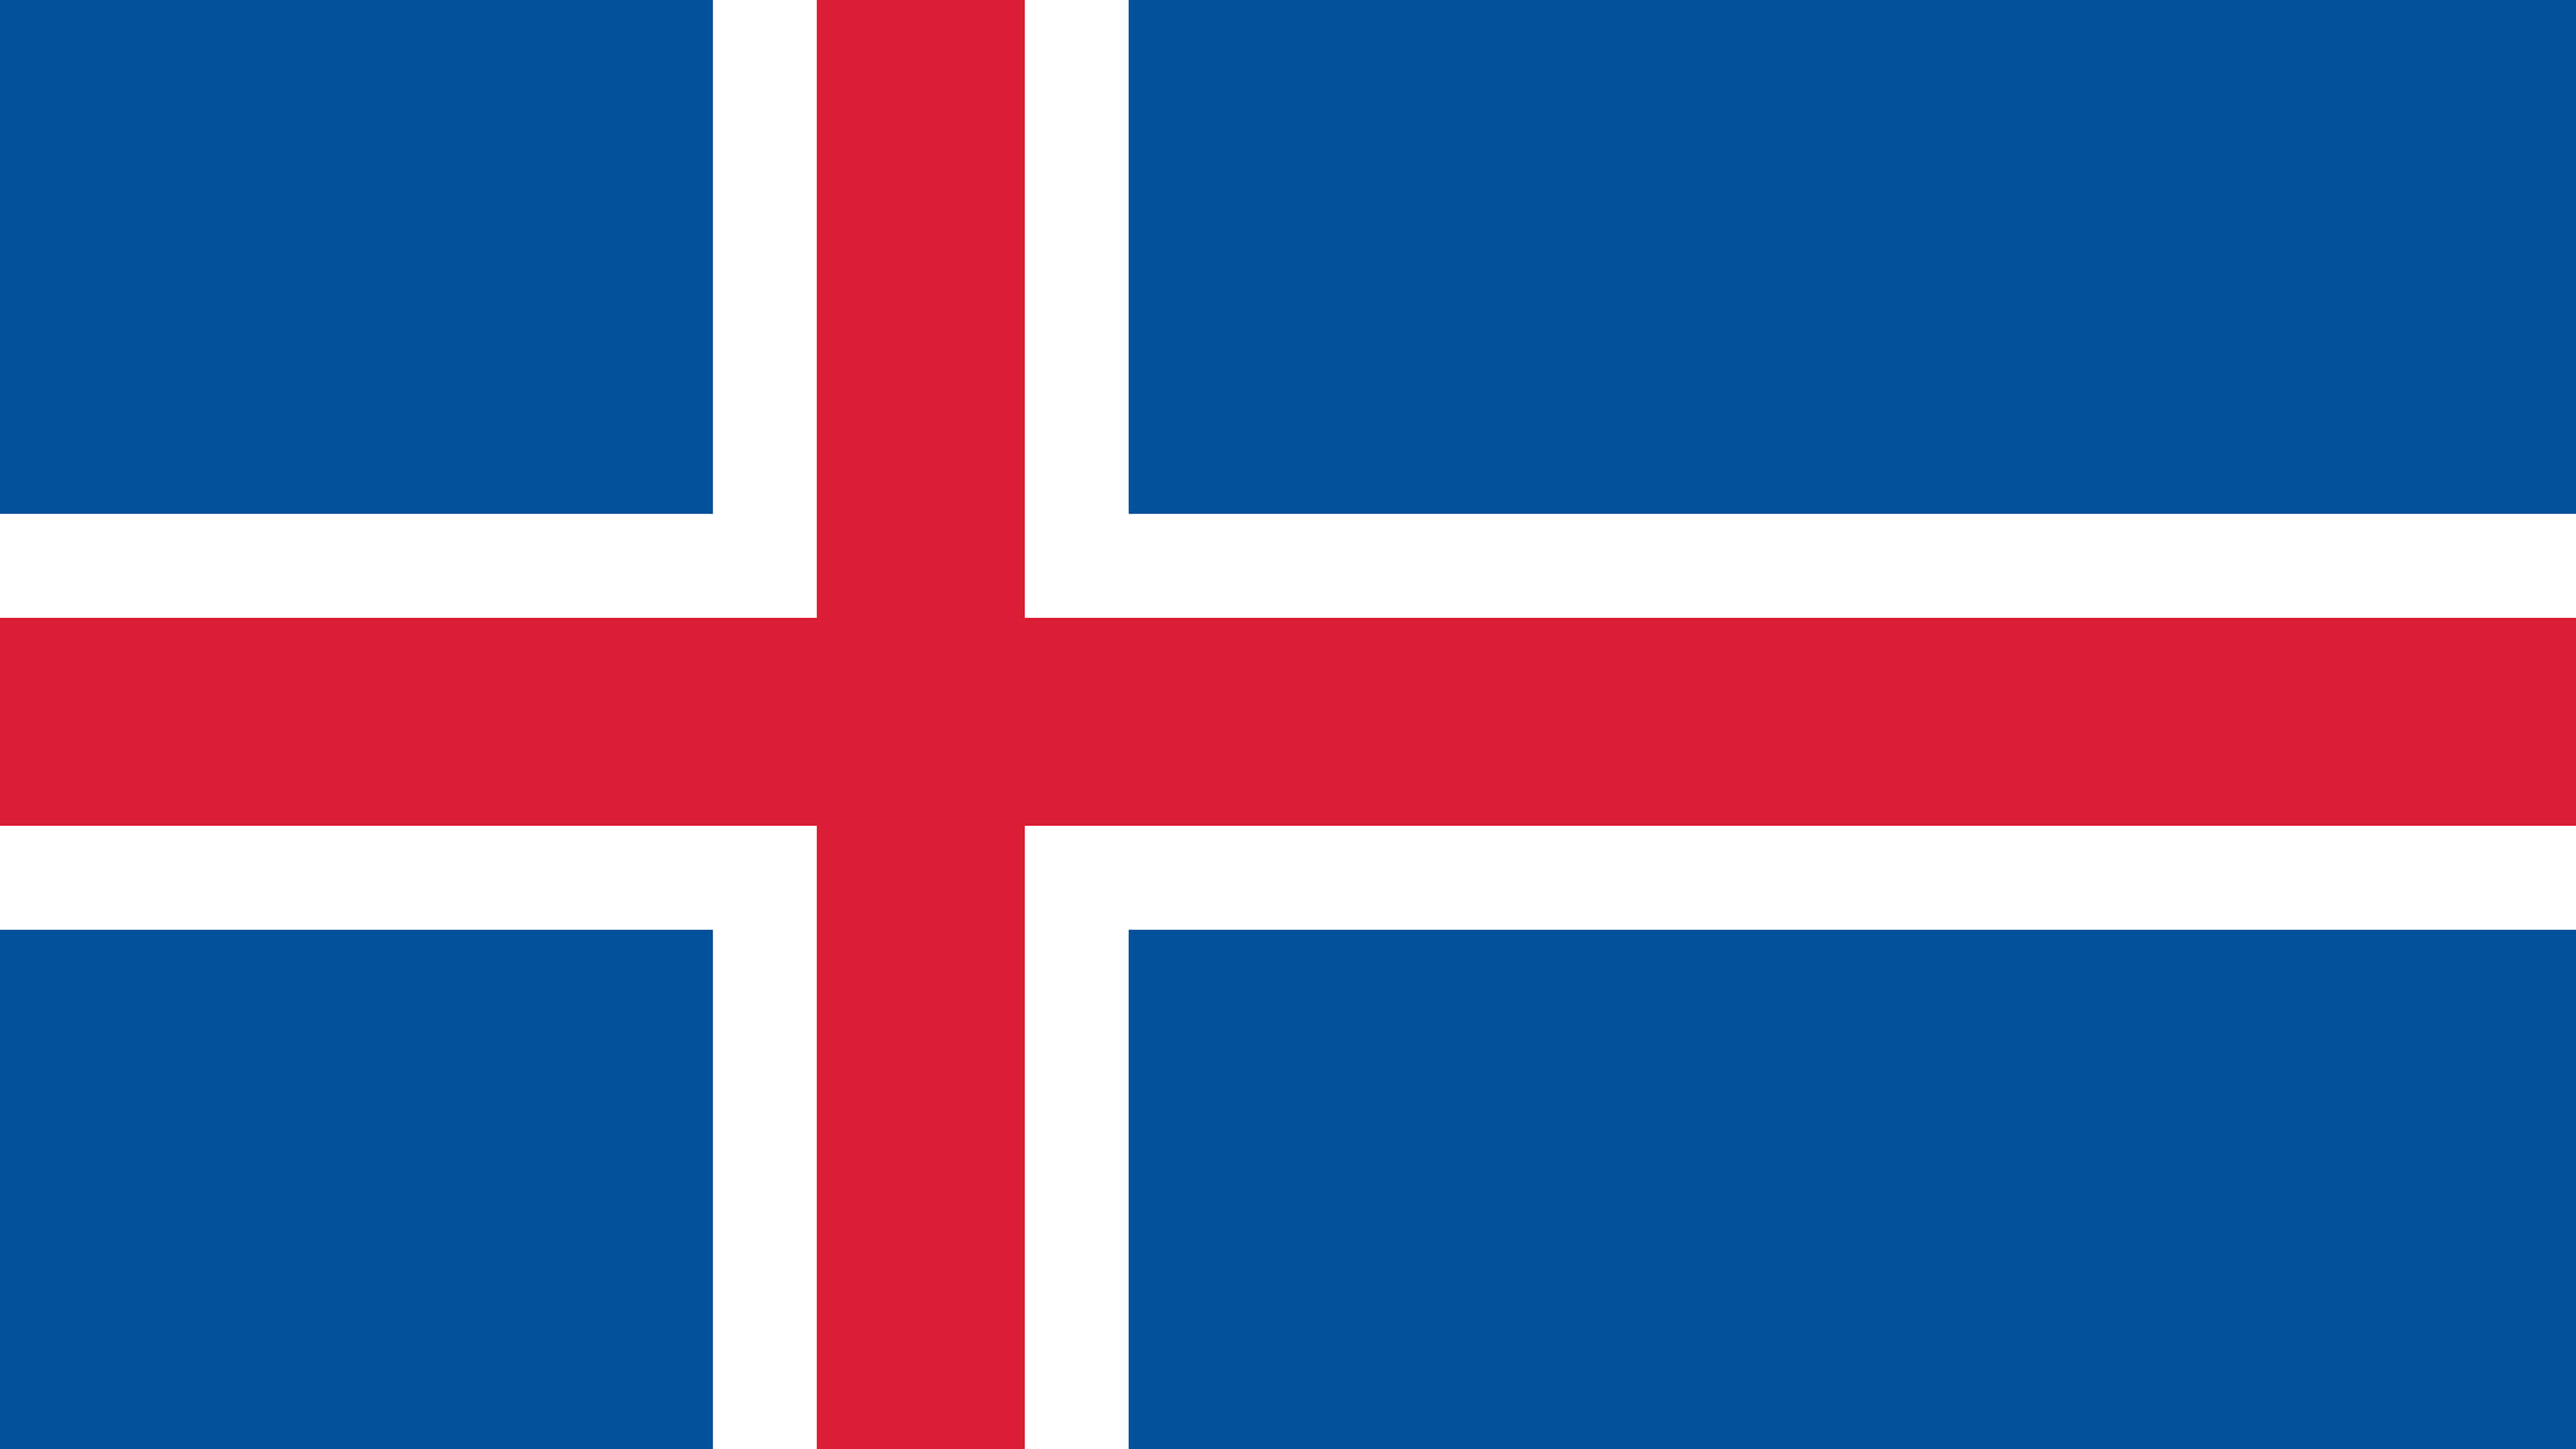 iceland flag uhd 4k wallpaper